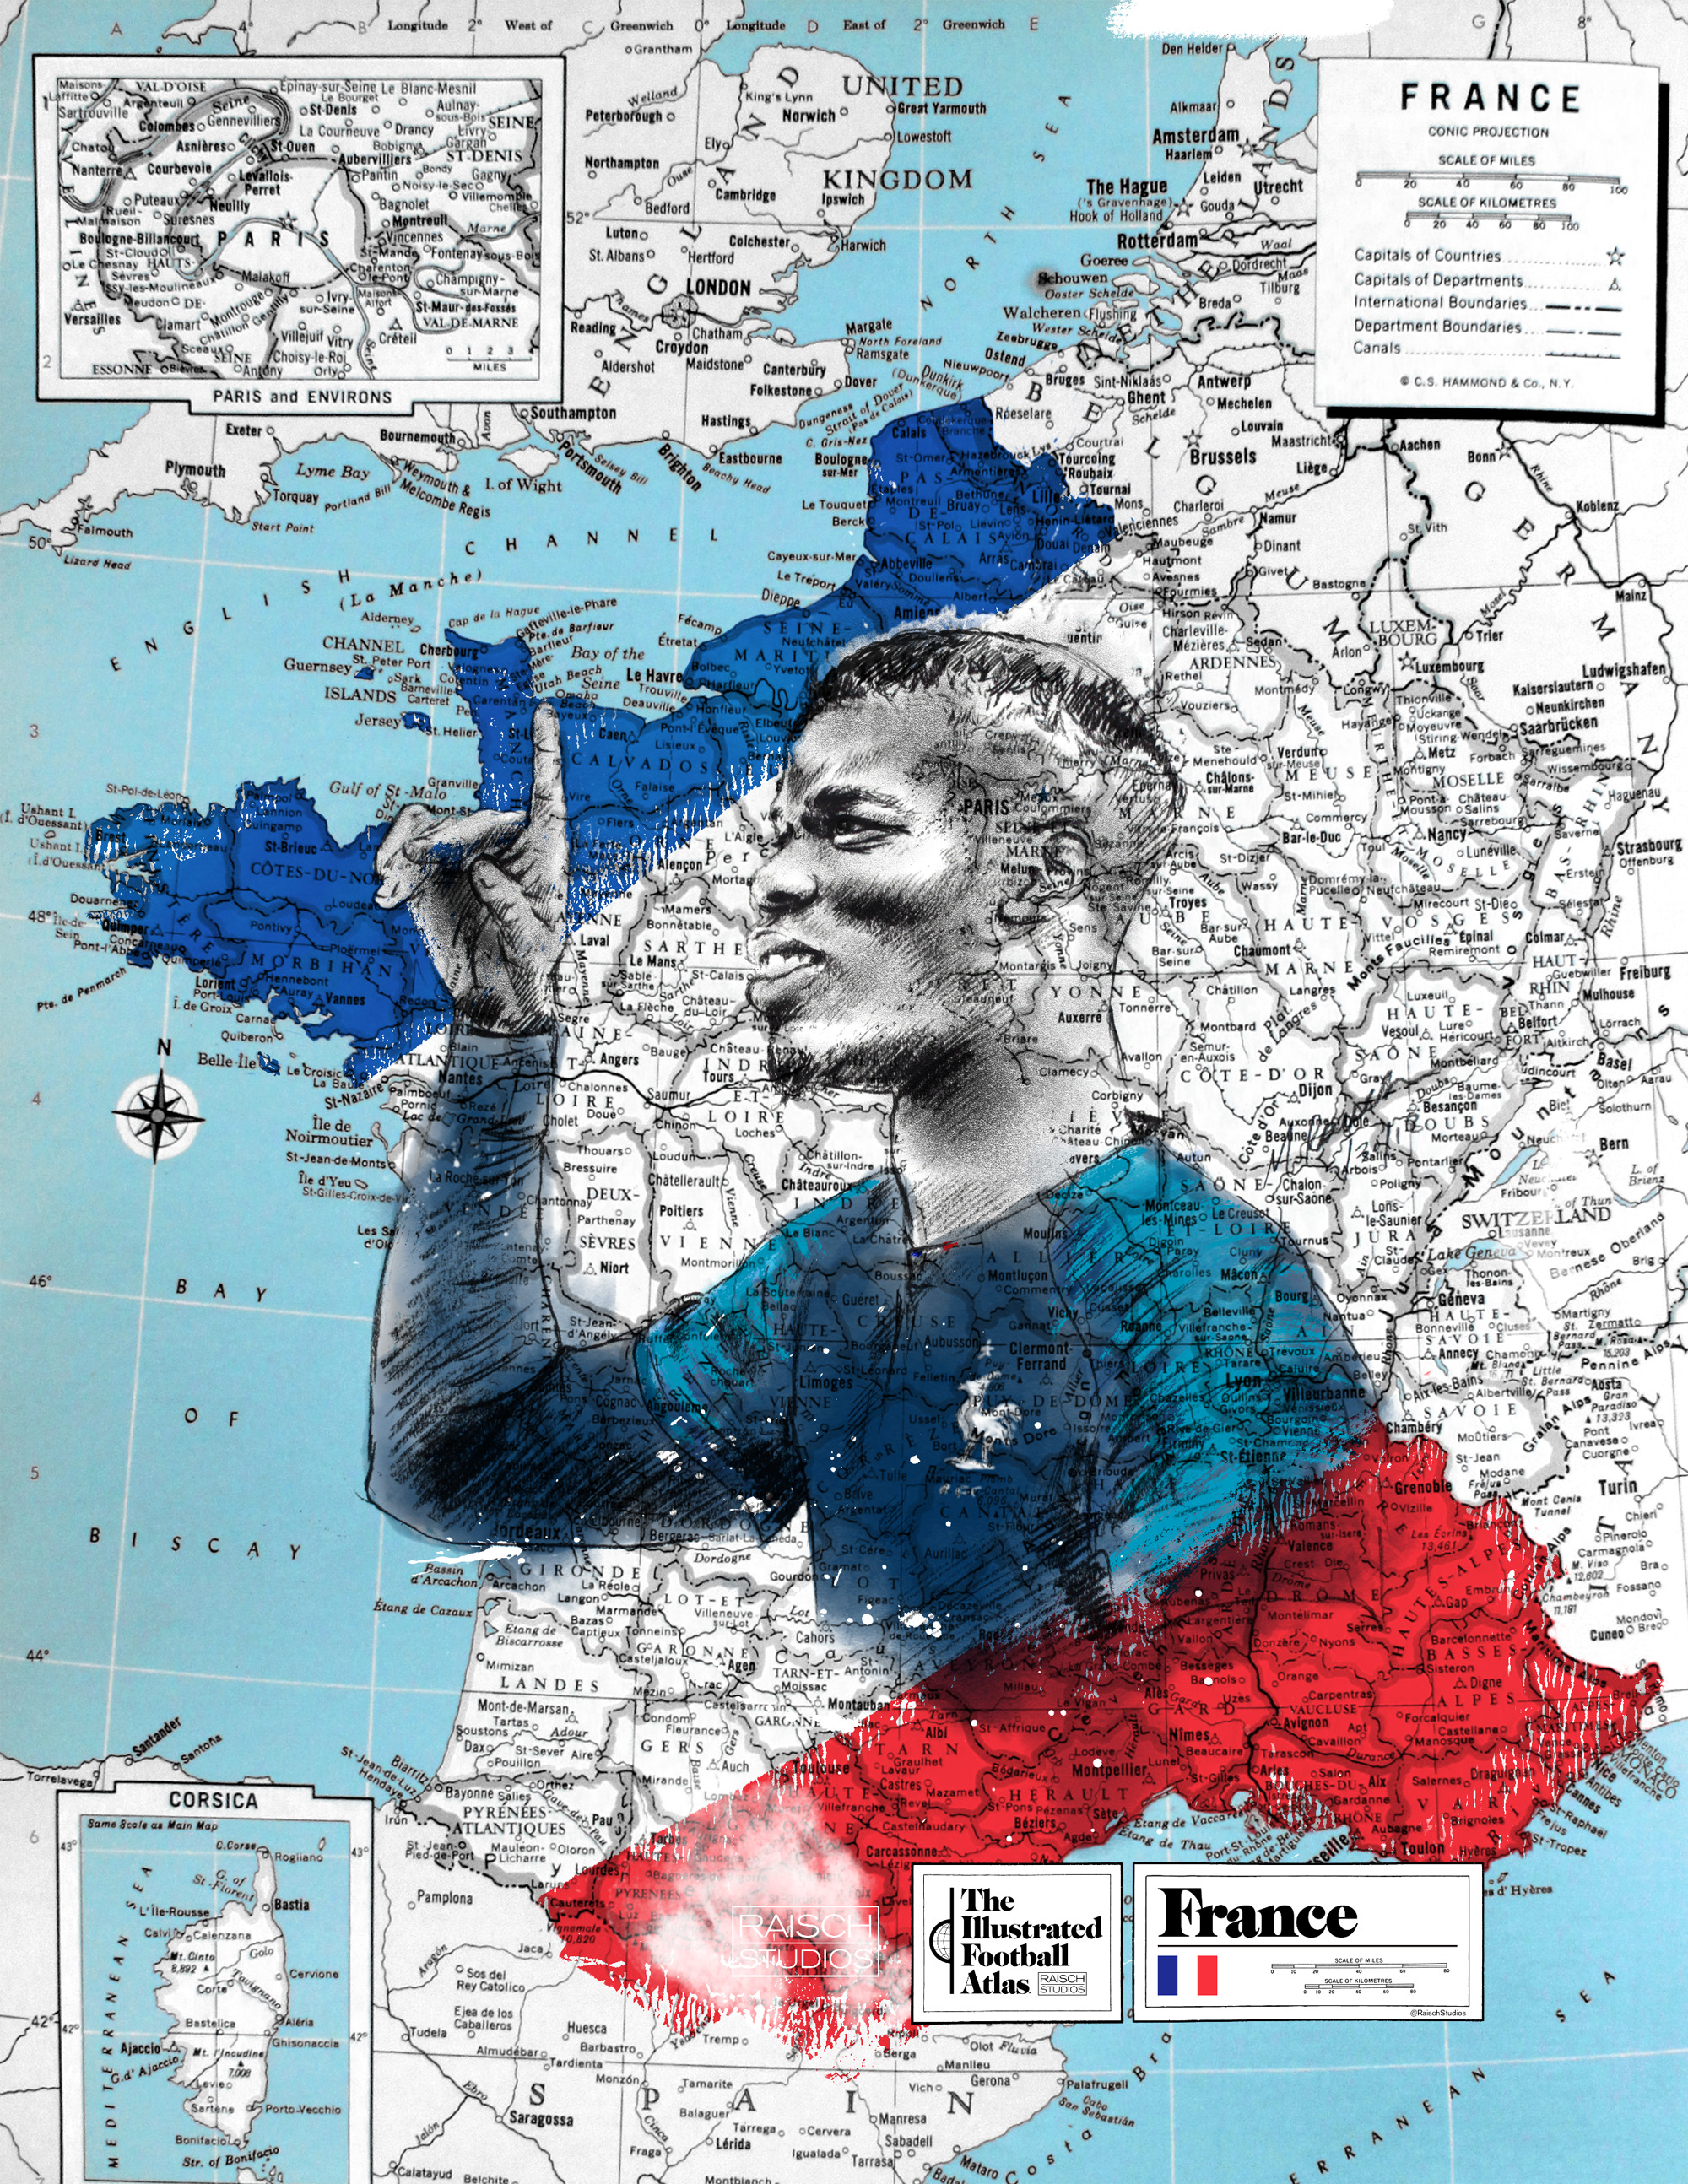 France_the_Football_Atlas_WorldCup2018-Raisch.jpg